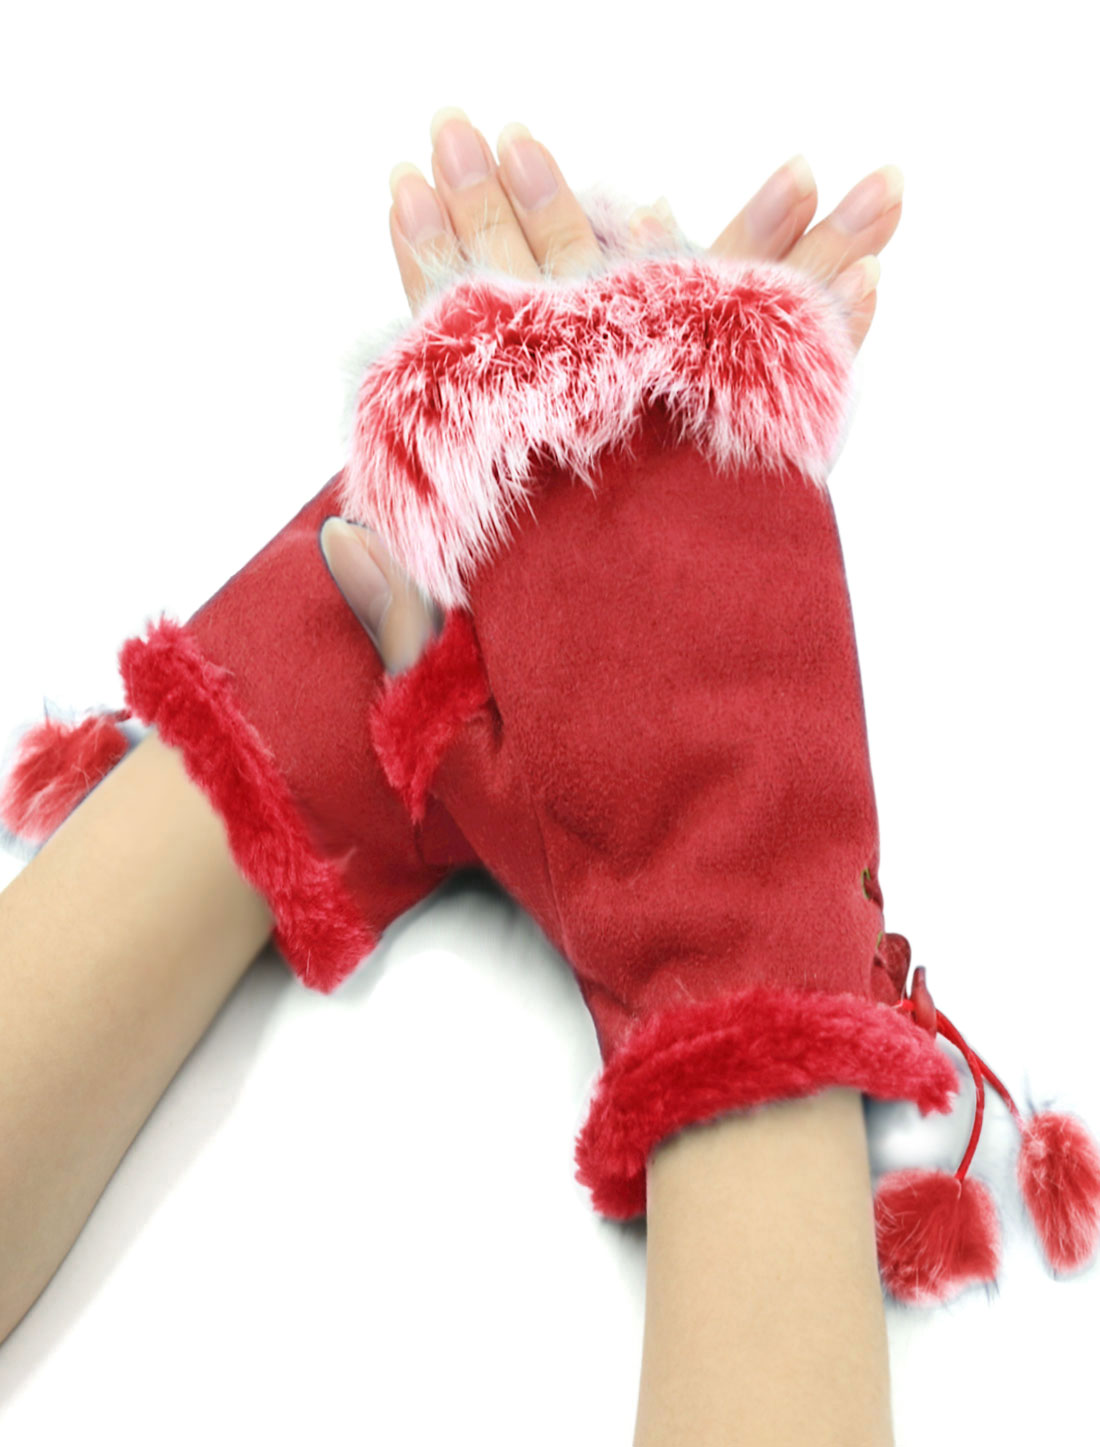 Ladies Manmade Cony Hair Decor Red Faux Suede Fingerless Gloves Mitten Pair